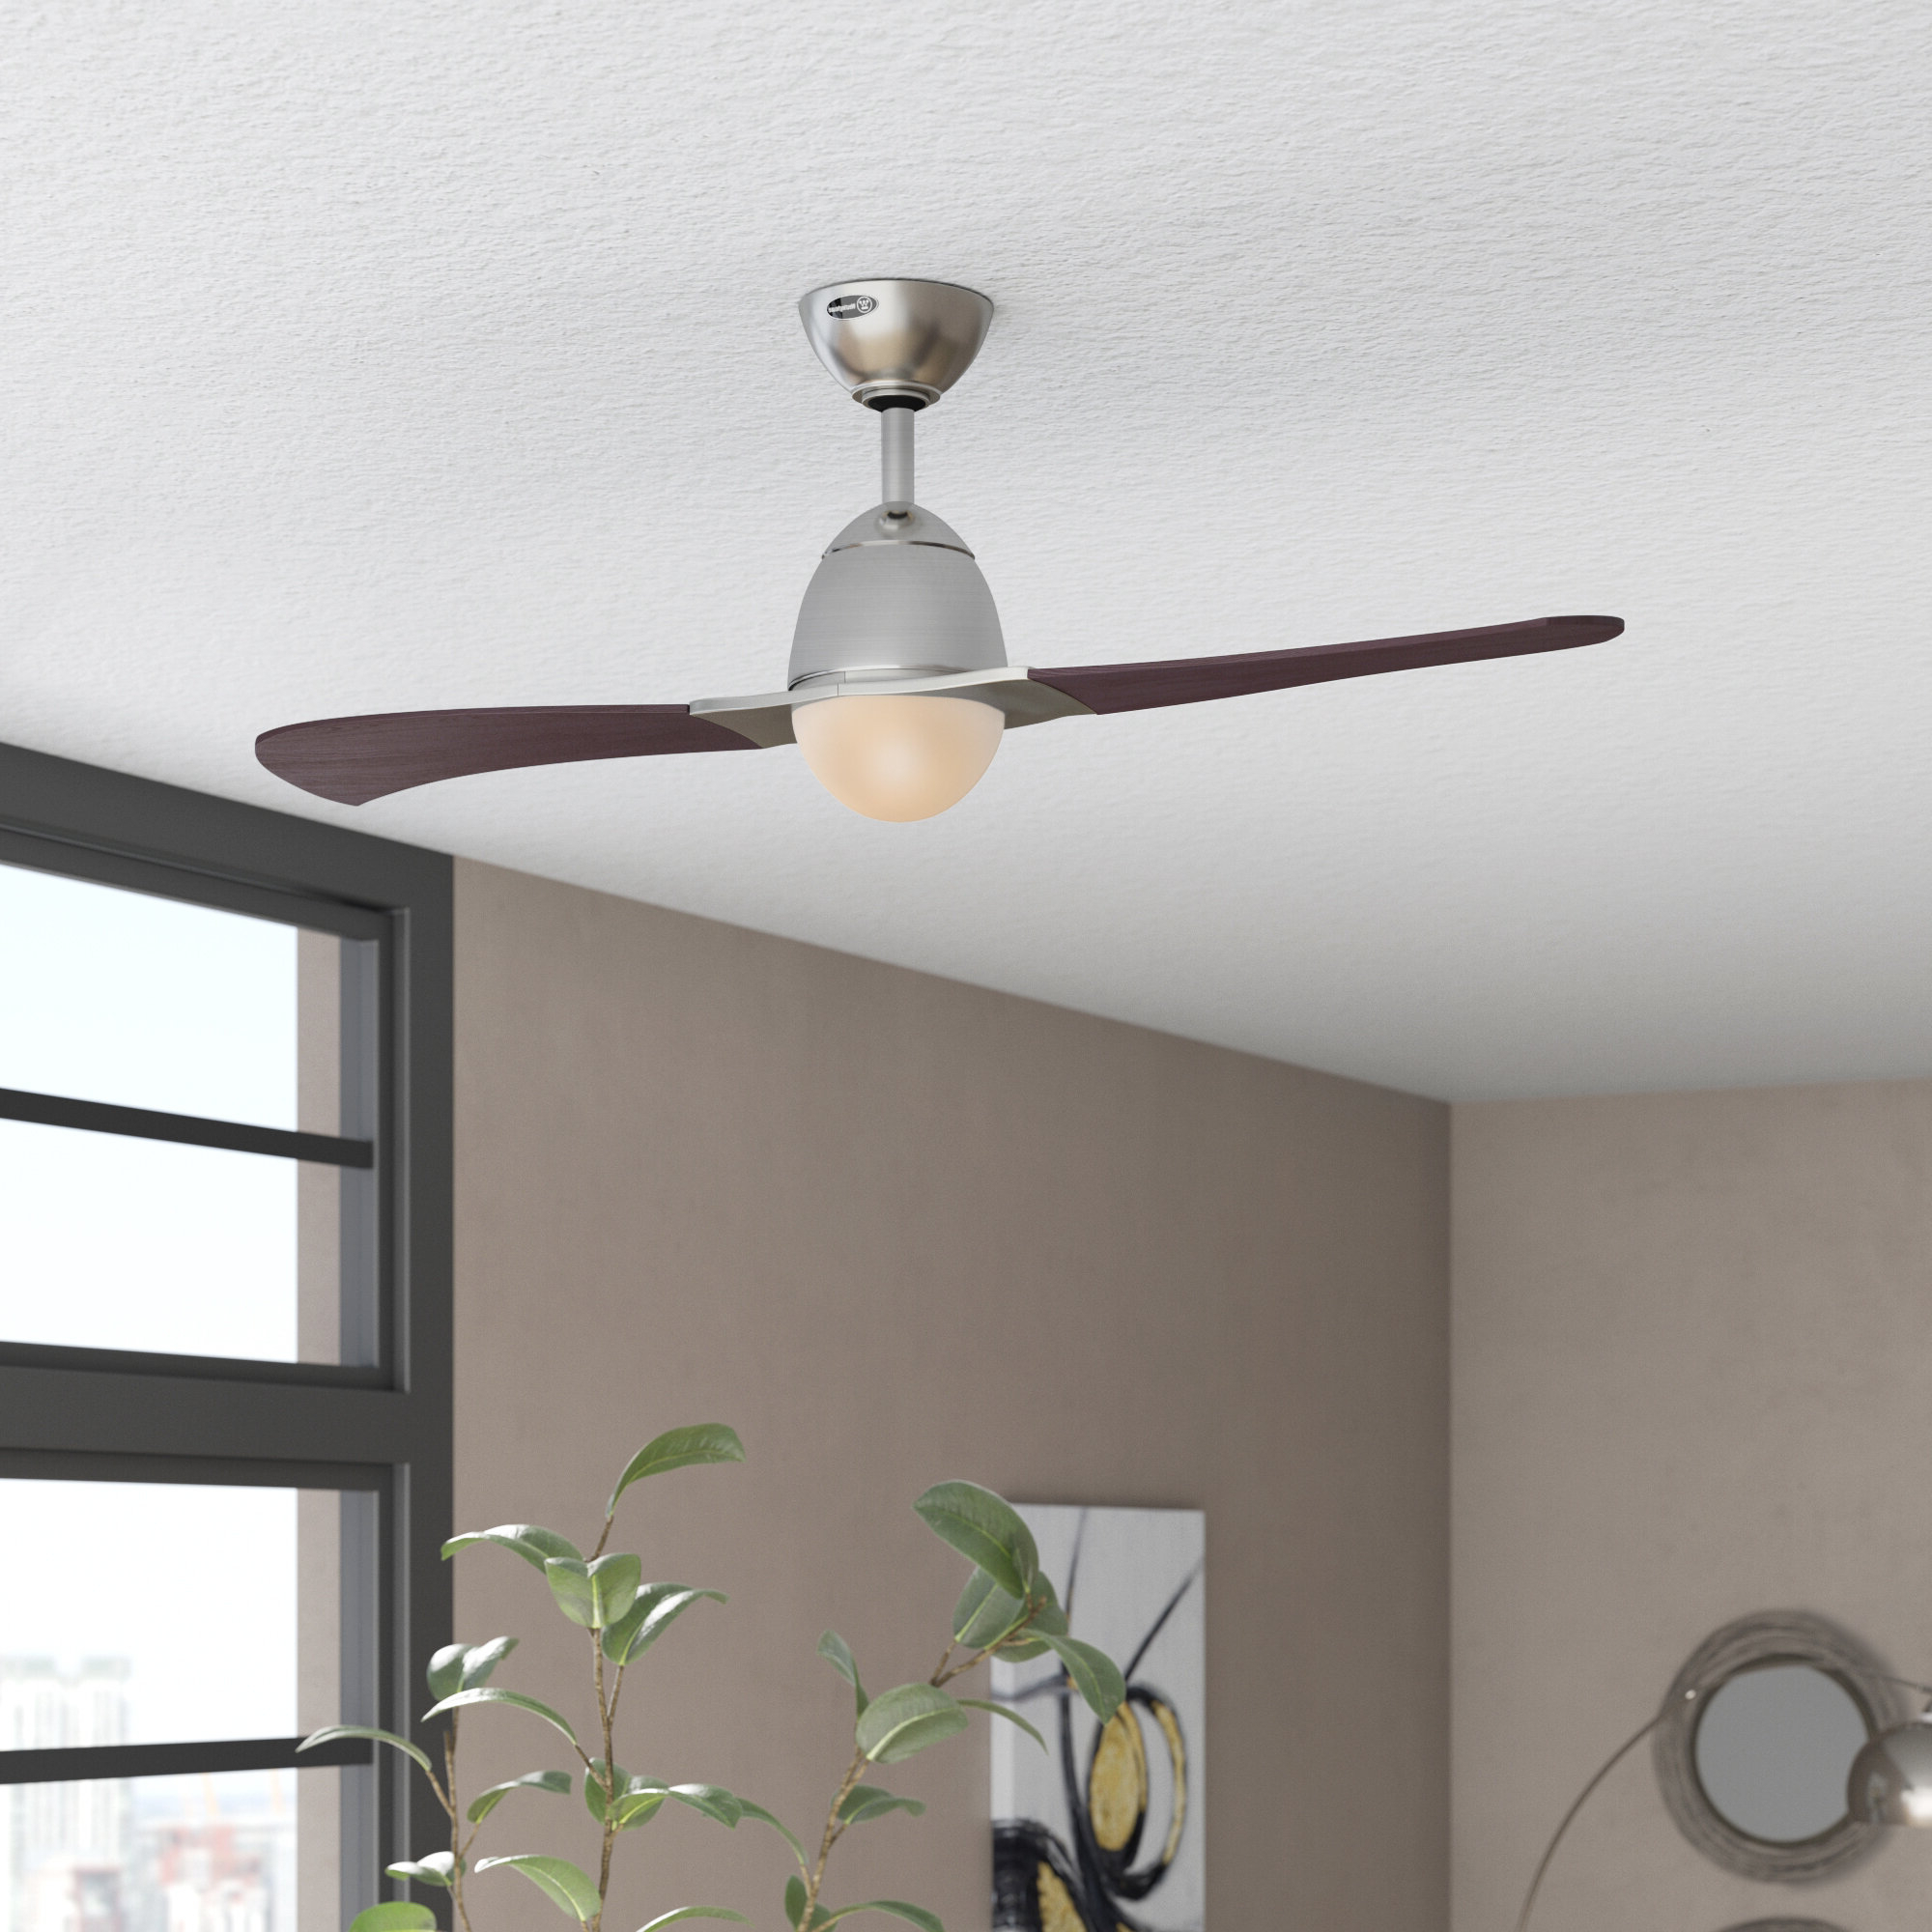 """Recent 48"""" Amezquita 2 Blade Led Ceiling Fan With Remote Light Kit Included Throughout Concept Ii 3 Blade Led Ceiling Fans With Remote (View 16 of 20)"""